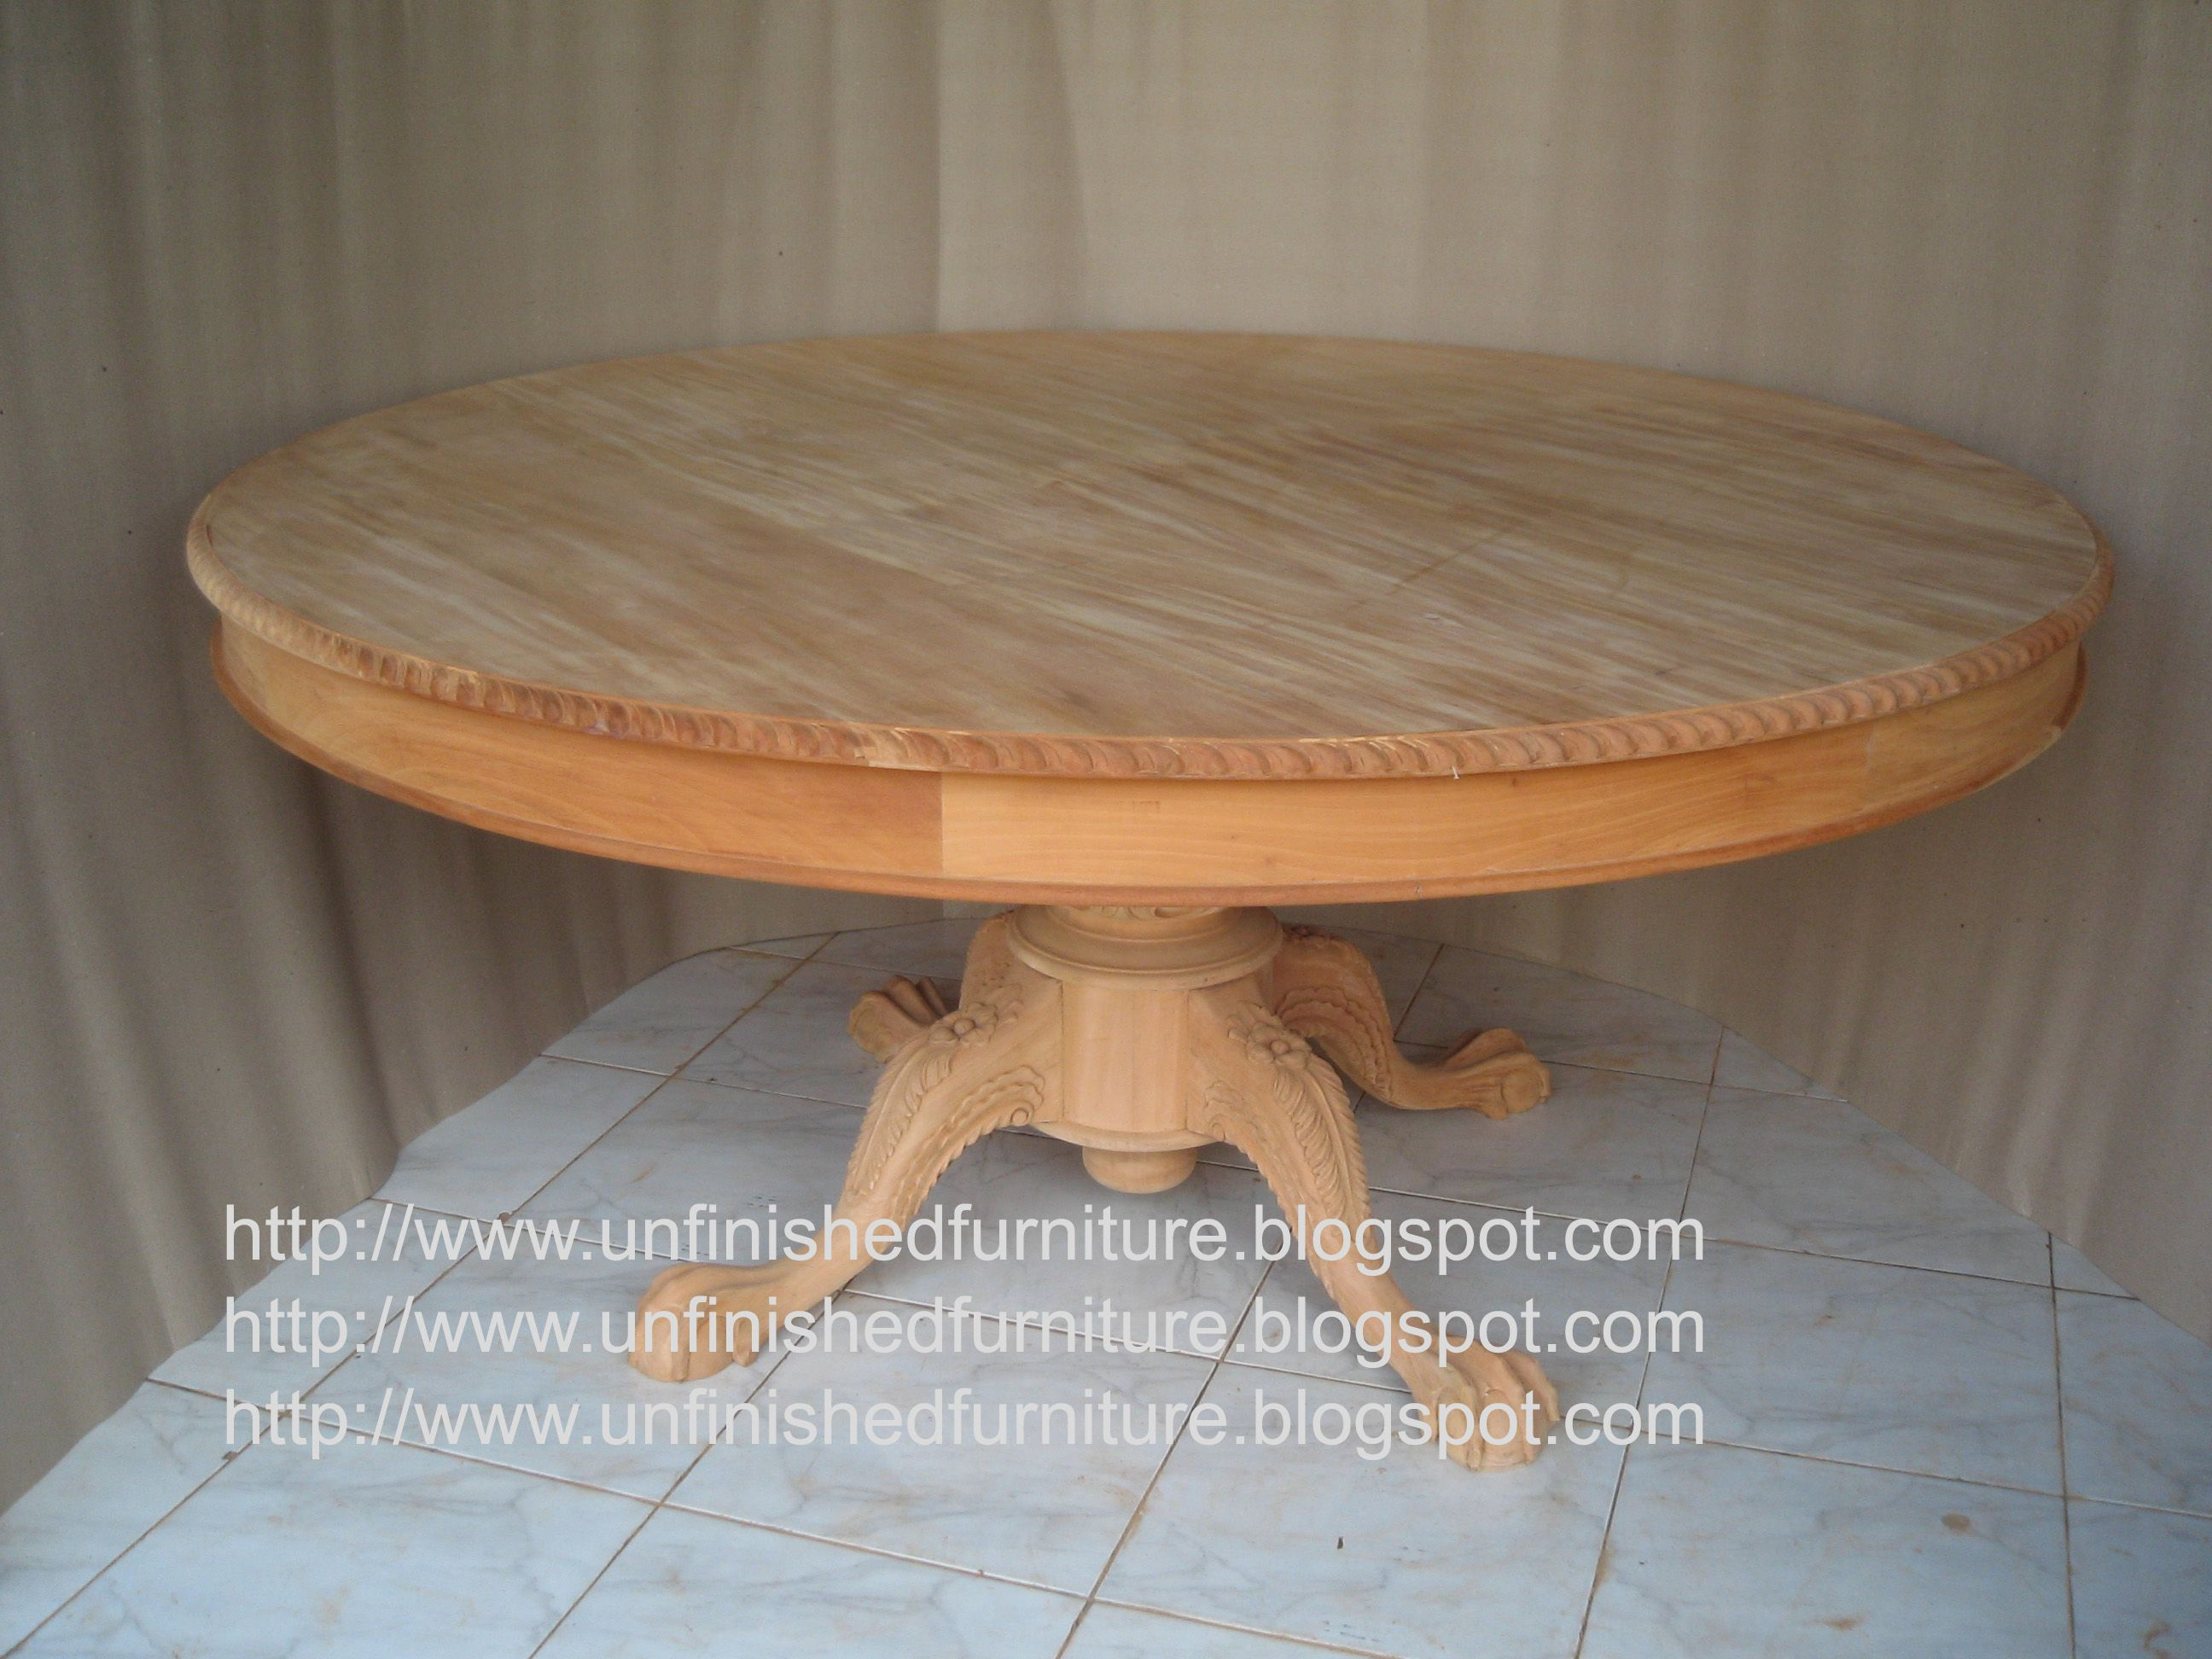 Unfinished mahogany Furniture Round Chippendale Dining table